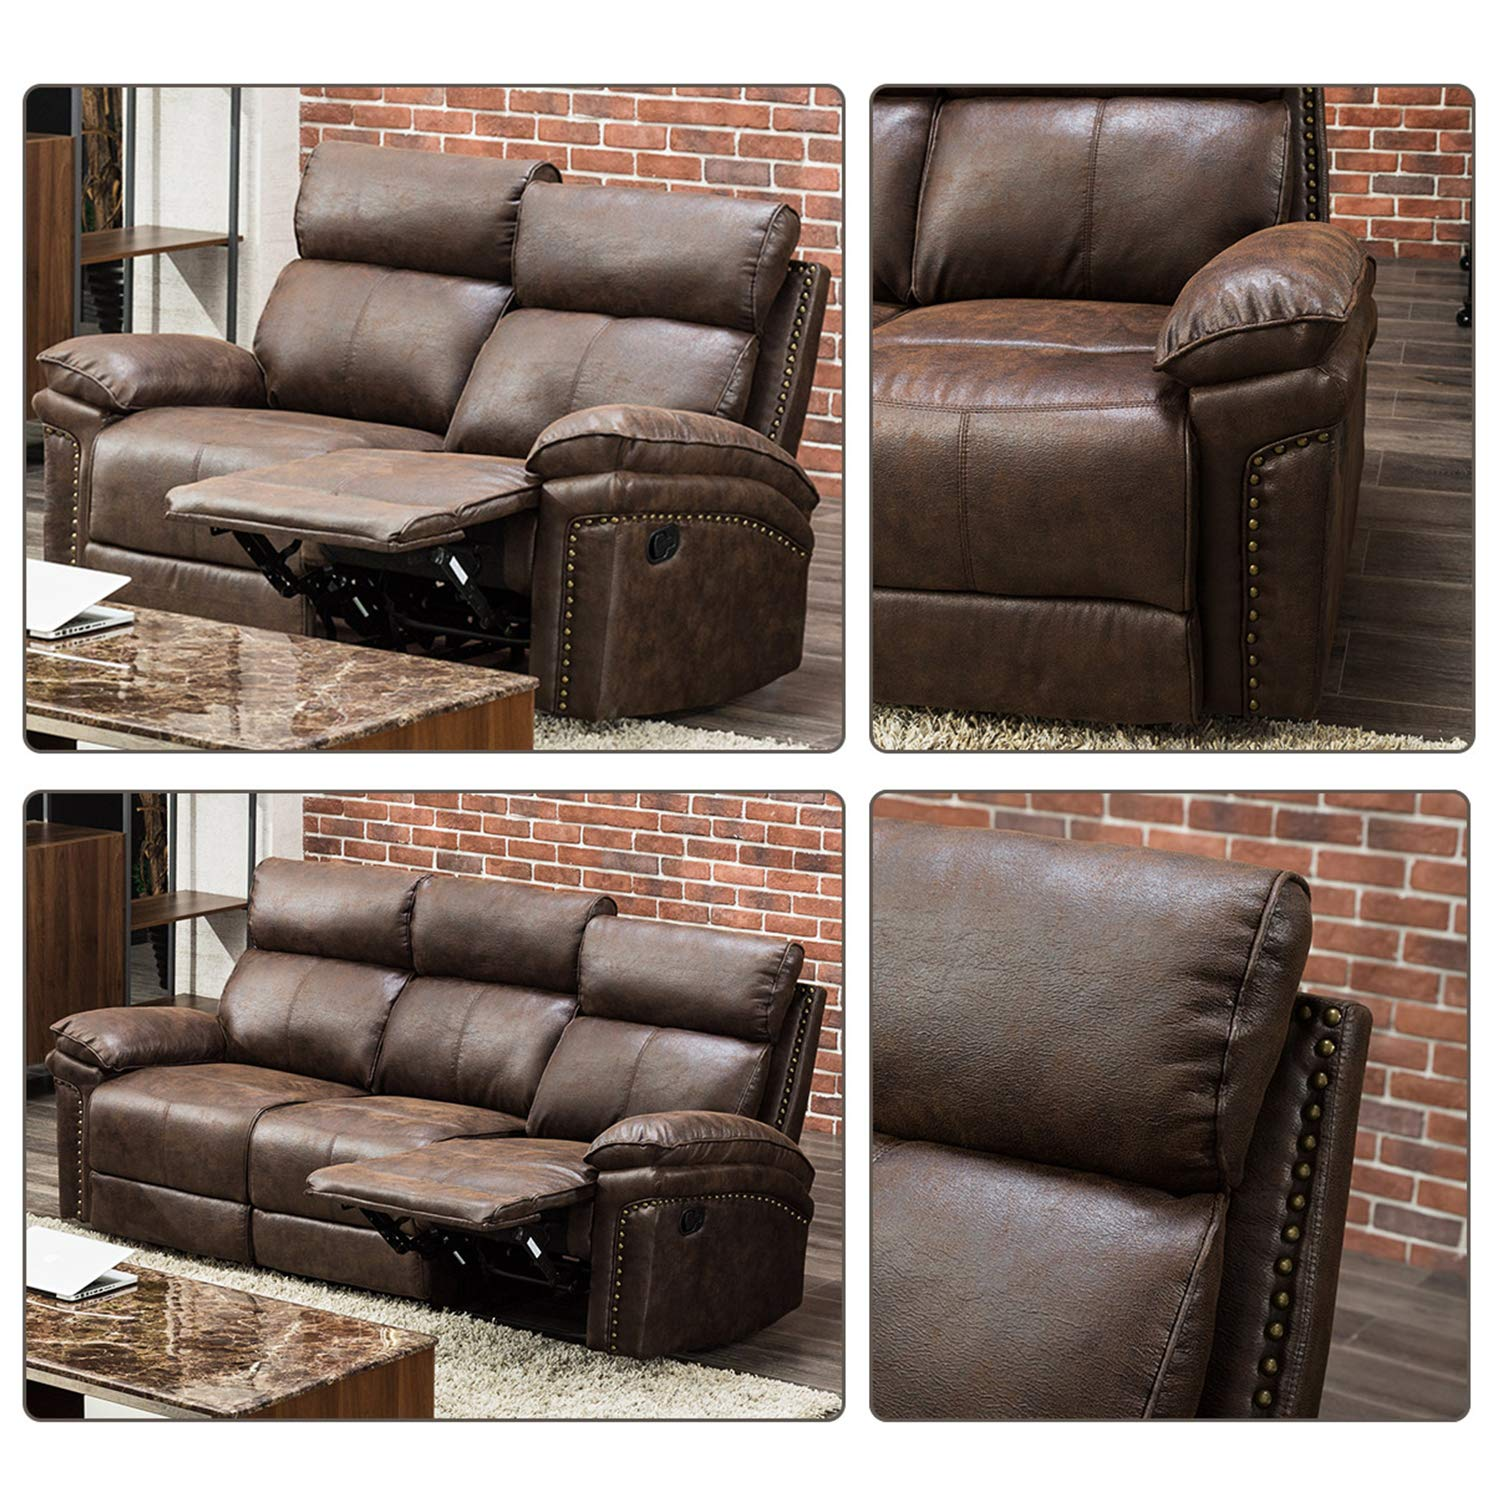 FLIEKS Sectional Sofa Reclining Couch Recliner Sofa Chair Leather Sofa  Couches for Living Room Accent Chair Set (Loveseat+3-Seat)